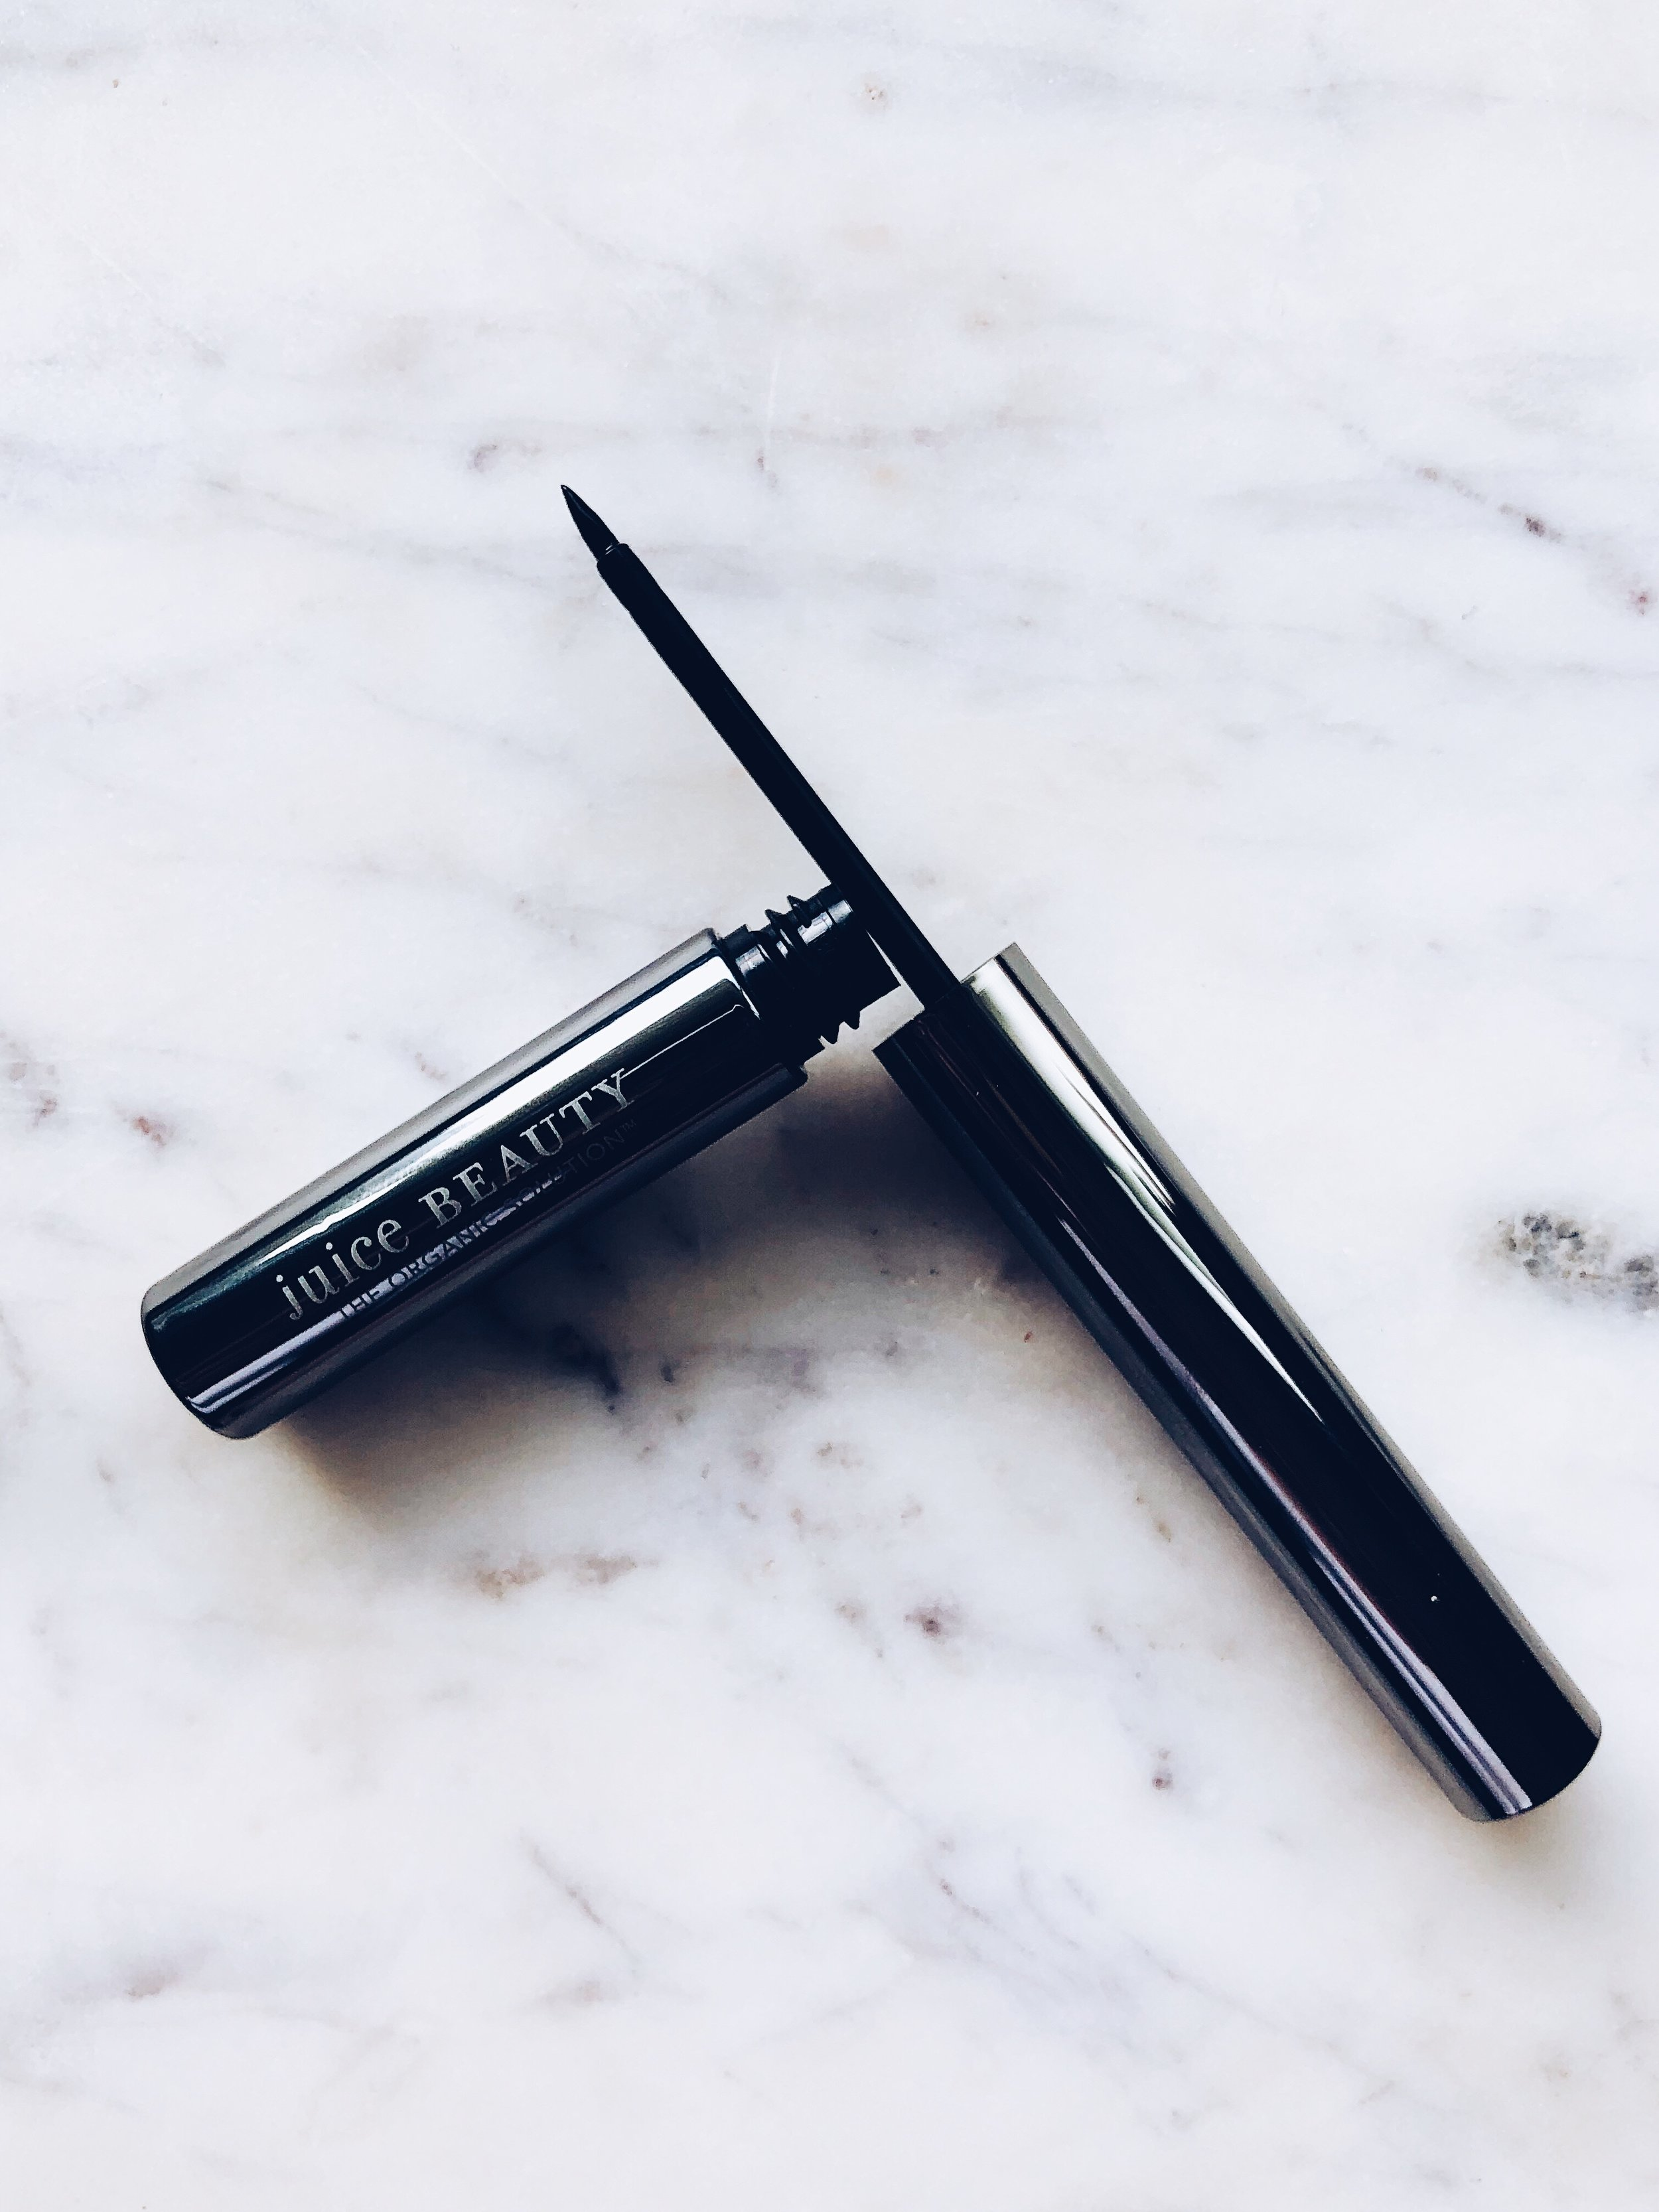 Juice Beauty Phyto-Pigments Liquid Line & Define Eyeliner- $24 - Here's the quick SCORECARD breakdown. Each question is rated on a scale of 1 to 5, 5 being the best:1. How do the ingredients look (EWG.org ratings)?- 4: Looking good! One iffy ingredient, see below.2. How is the color payoff? 5: Color glides on and is super saturated!3. Does it apply seamlessly?- 4: I found this liquid liner to be super easy on application. No pulling and when I went over the first coat, nothing budged or slid off.4. Does it last?- 4: I set and primed the lid. This liner stuck around almost all day!5. Does it build?- 4: Yes! You can keep a thin line OR exaggerate and thicken things without losing any sharp lines.6. Is this non-irritating?- 5: No breakouts here!7. How conscious is the brand? Cruelty free, sustainable, etc.- 4: Super close to perfect.FINAL SCORE:30/35